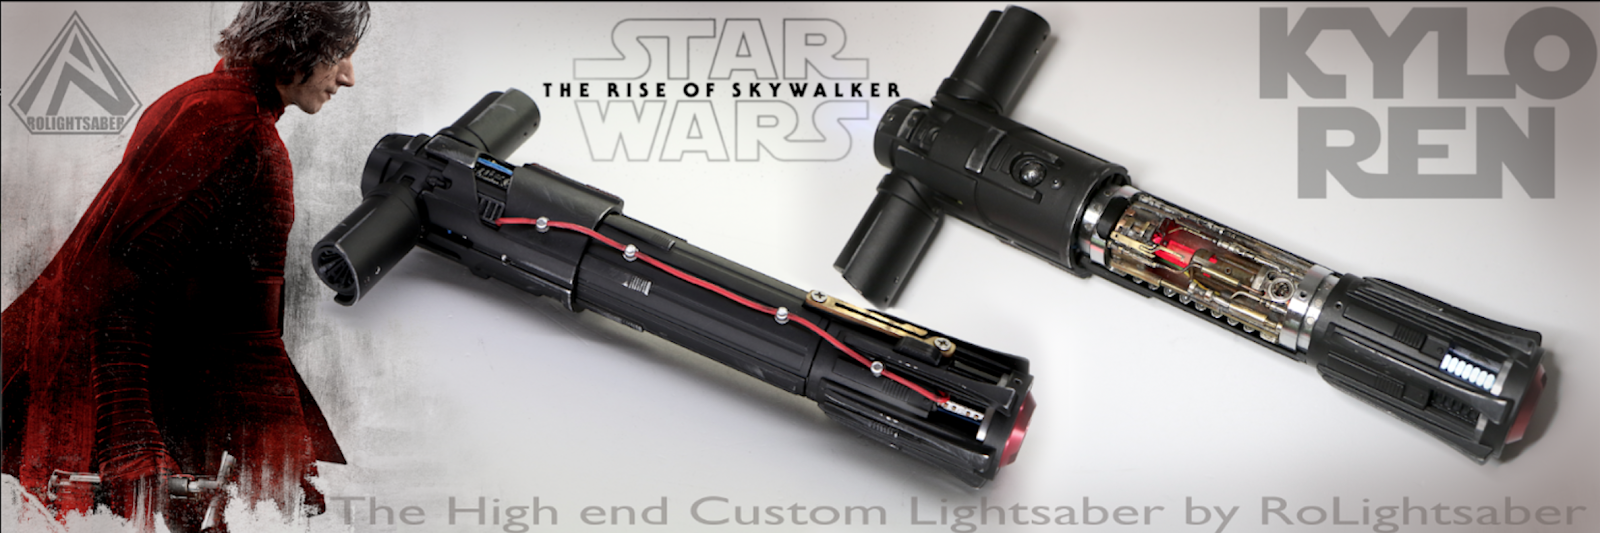 KYLO The Rise of Skywlaker